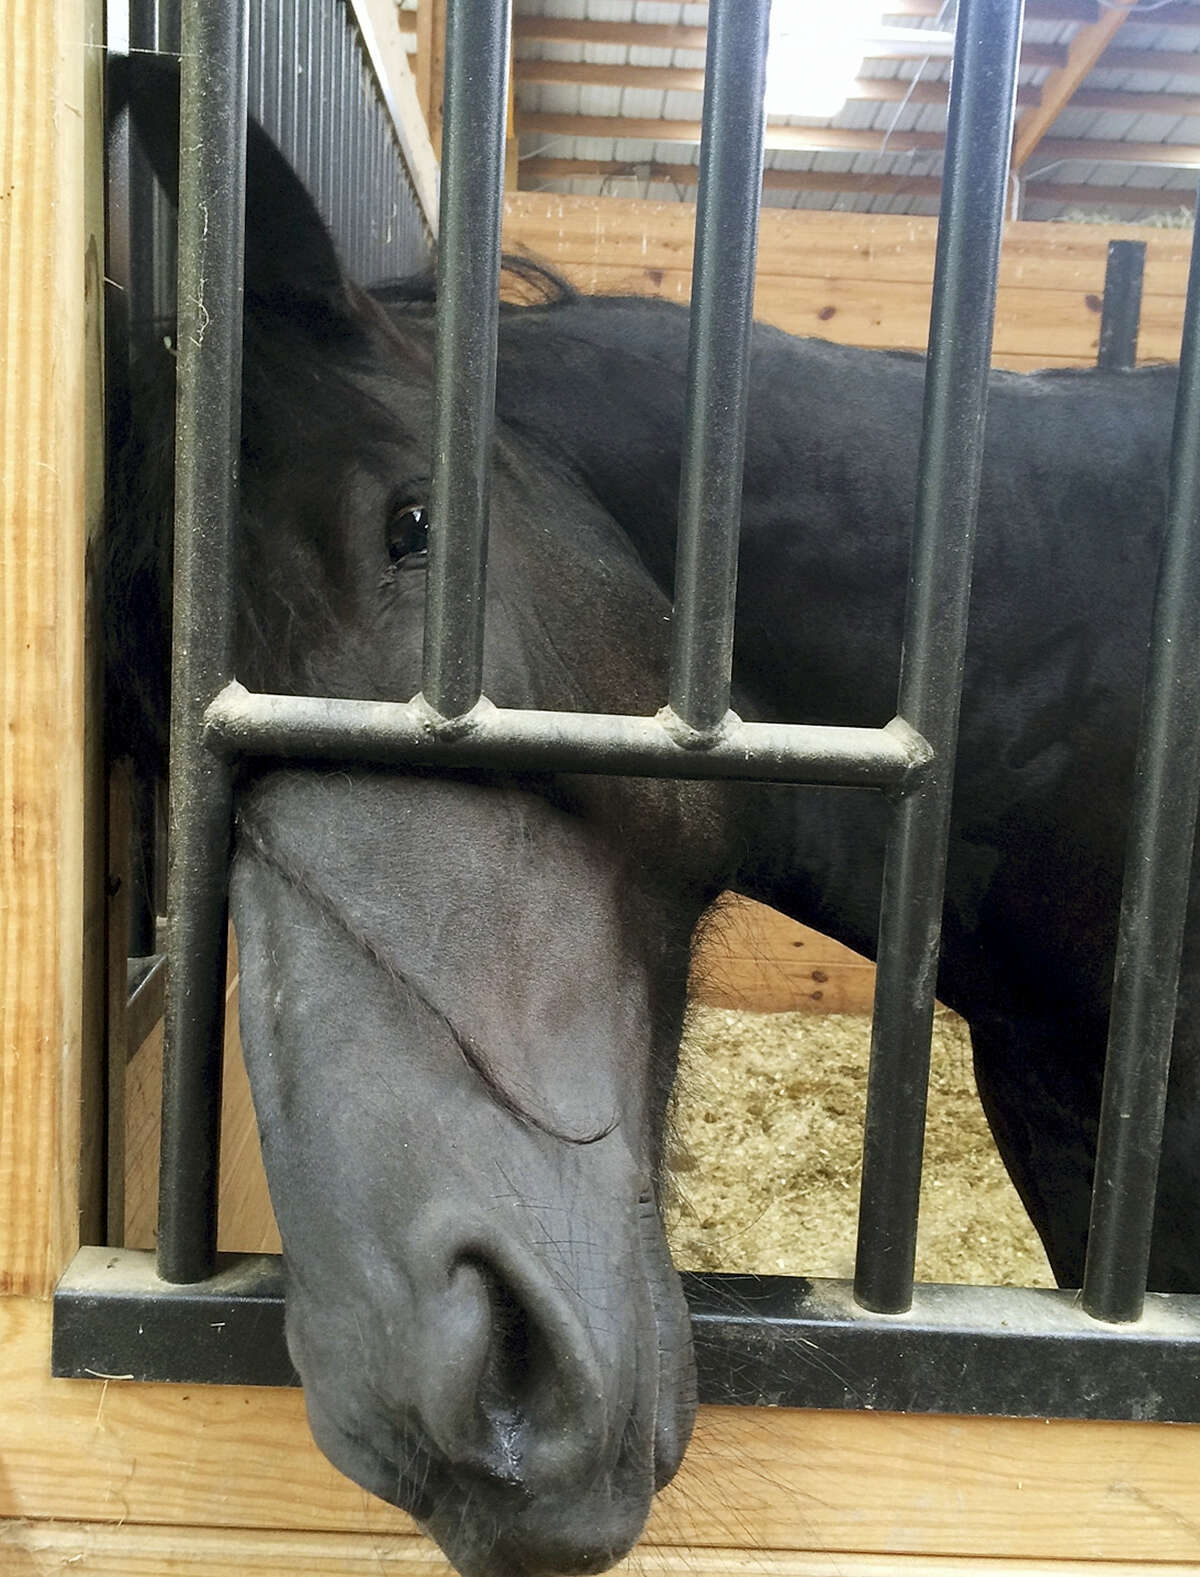 In this June 13, 2016 photo, a Friesian horse known as Francisca peeks her nose out of her stall at the Connecticut Department of Agriculture's large animal rehabilitation center at York Correctional Center in Niantic, Conn.